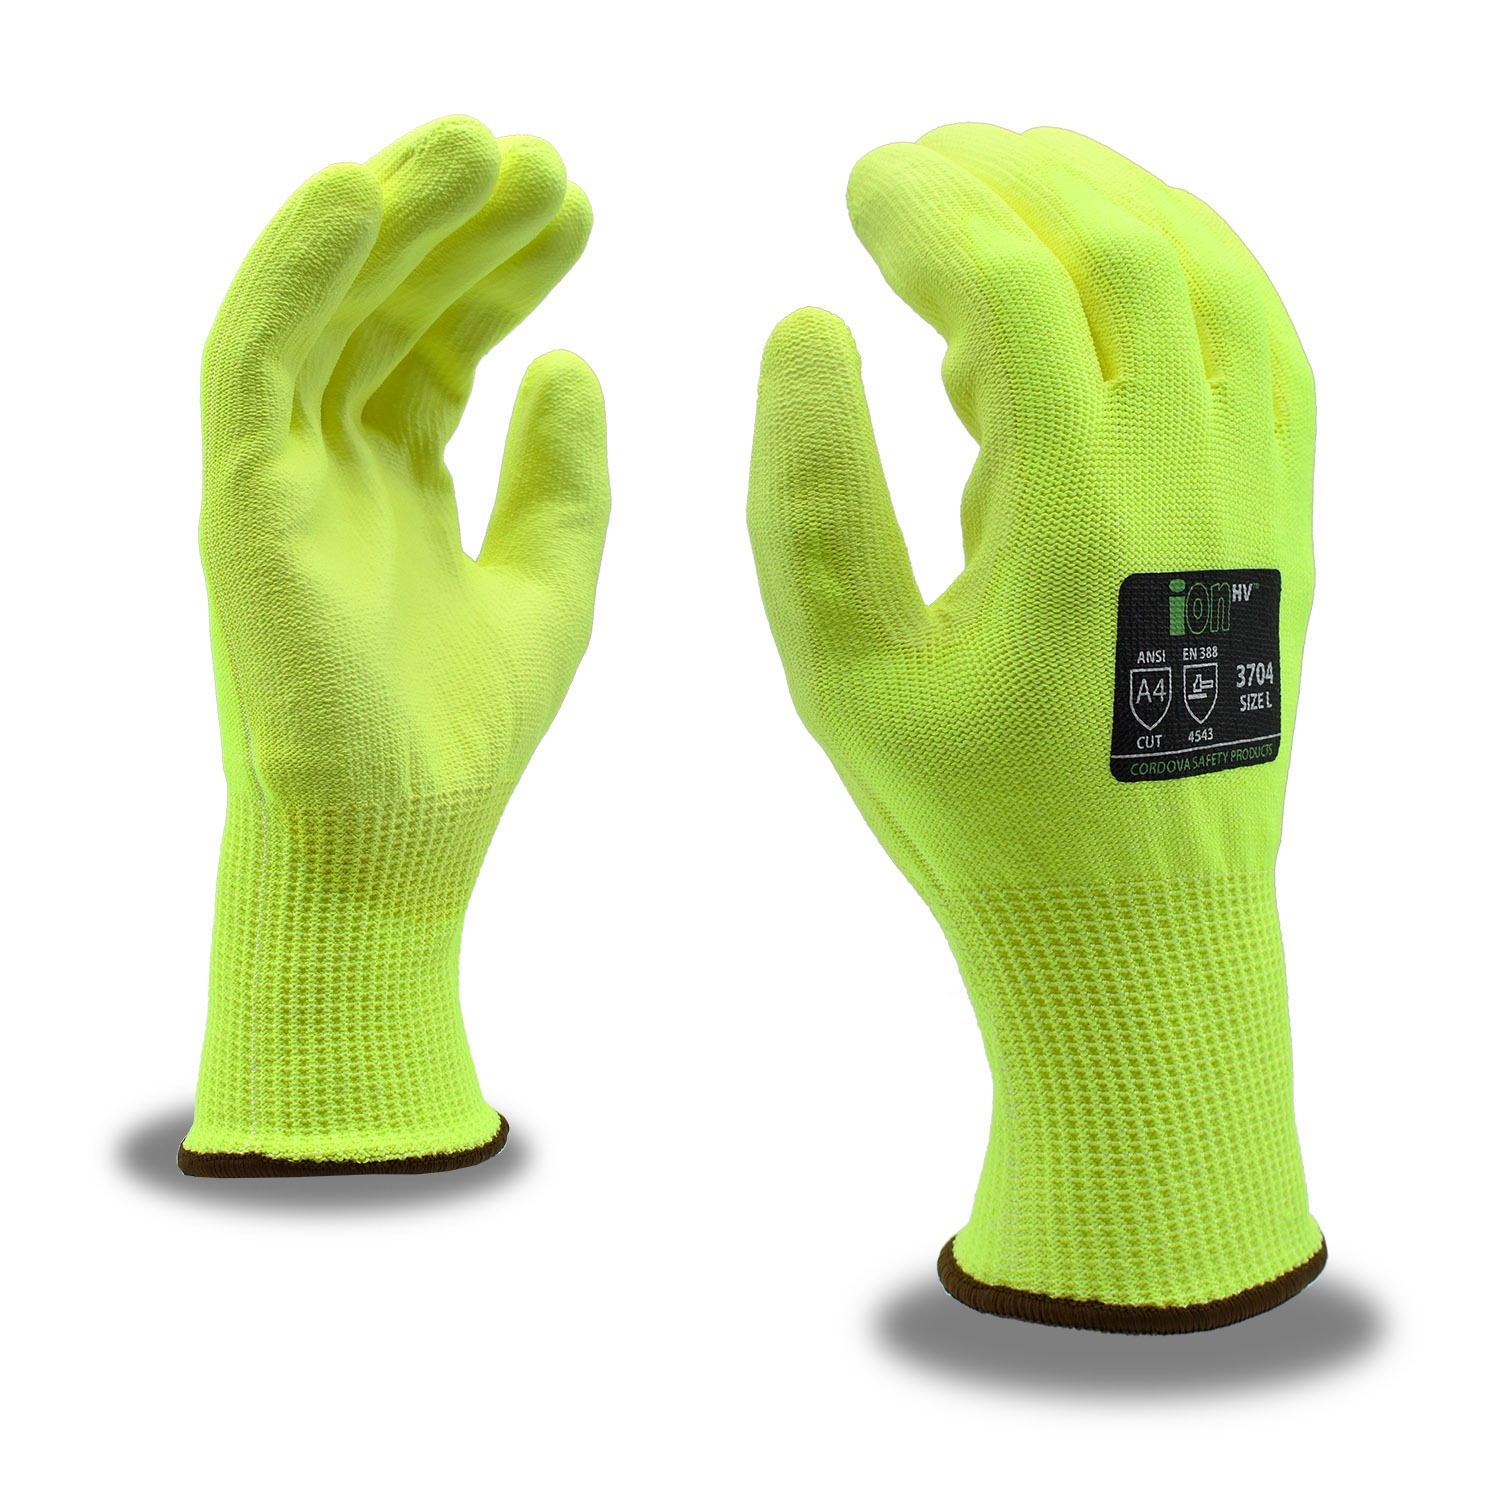 Cordova Safety Products Cut Resistant Gloves 1163702